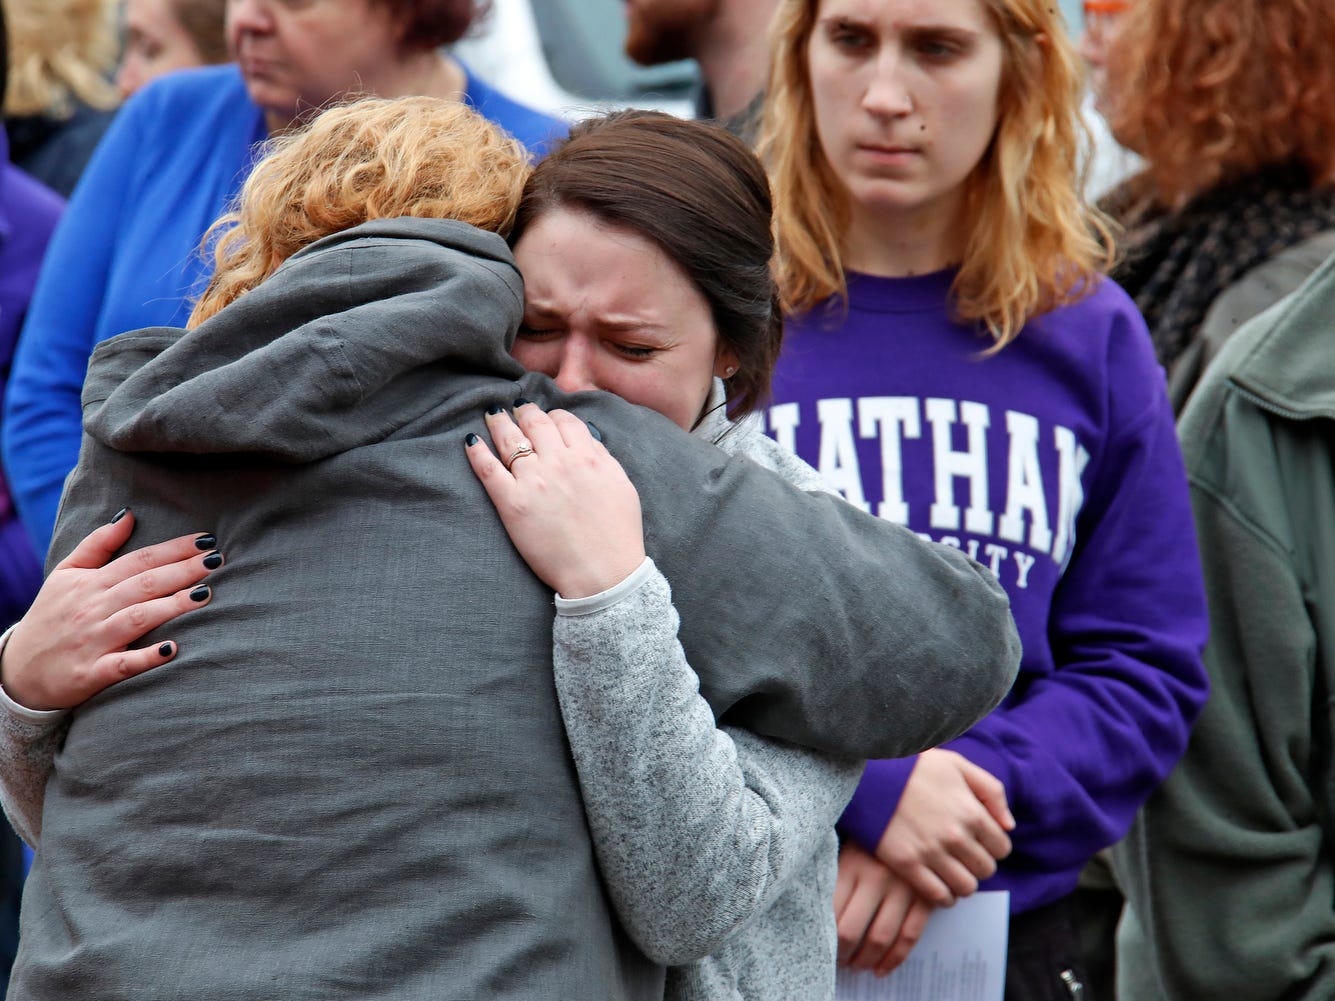 Chatham University students hug during a visit Thursday, Nov. 1, 2018, to a makeshift memorial outside the Tree of Life Synagogue to the 11 people killed Oct 27, 2018 while worshipping in the Squirrel Hill neighborhood of Pittsburgh.